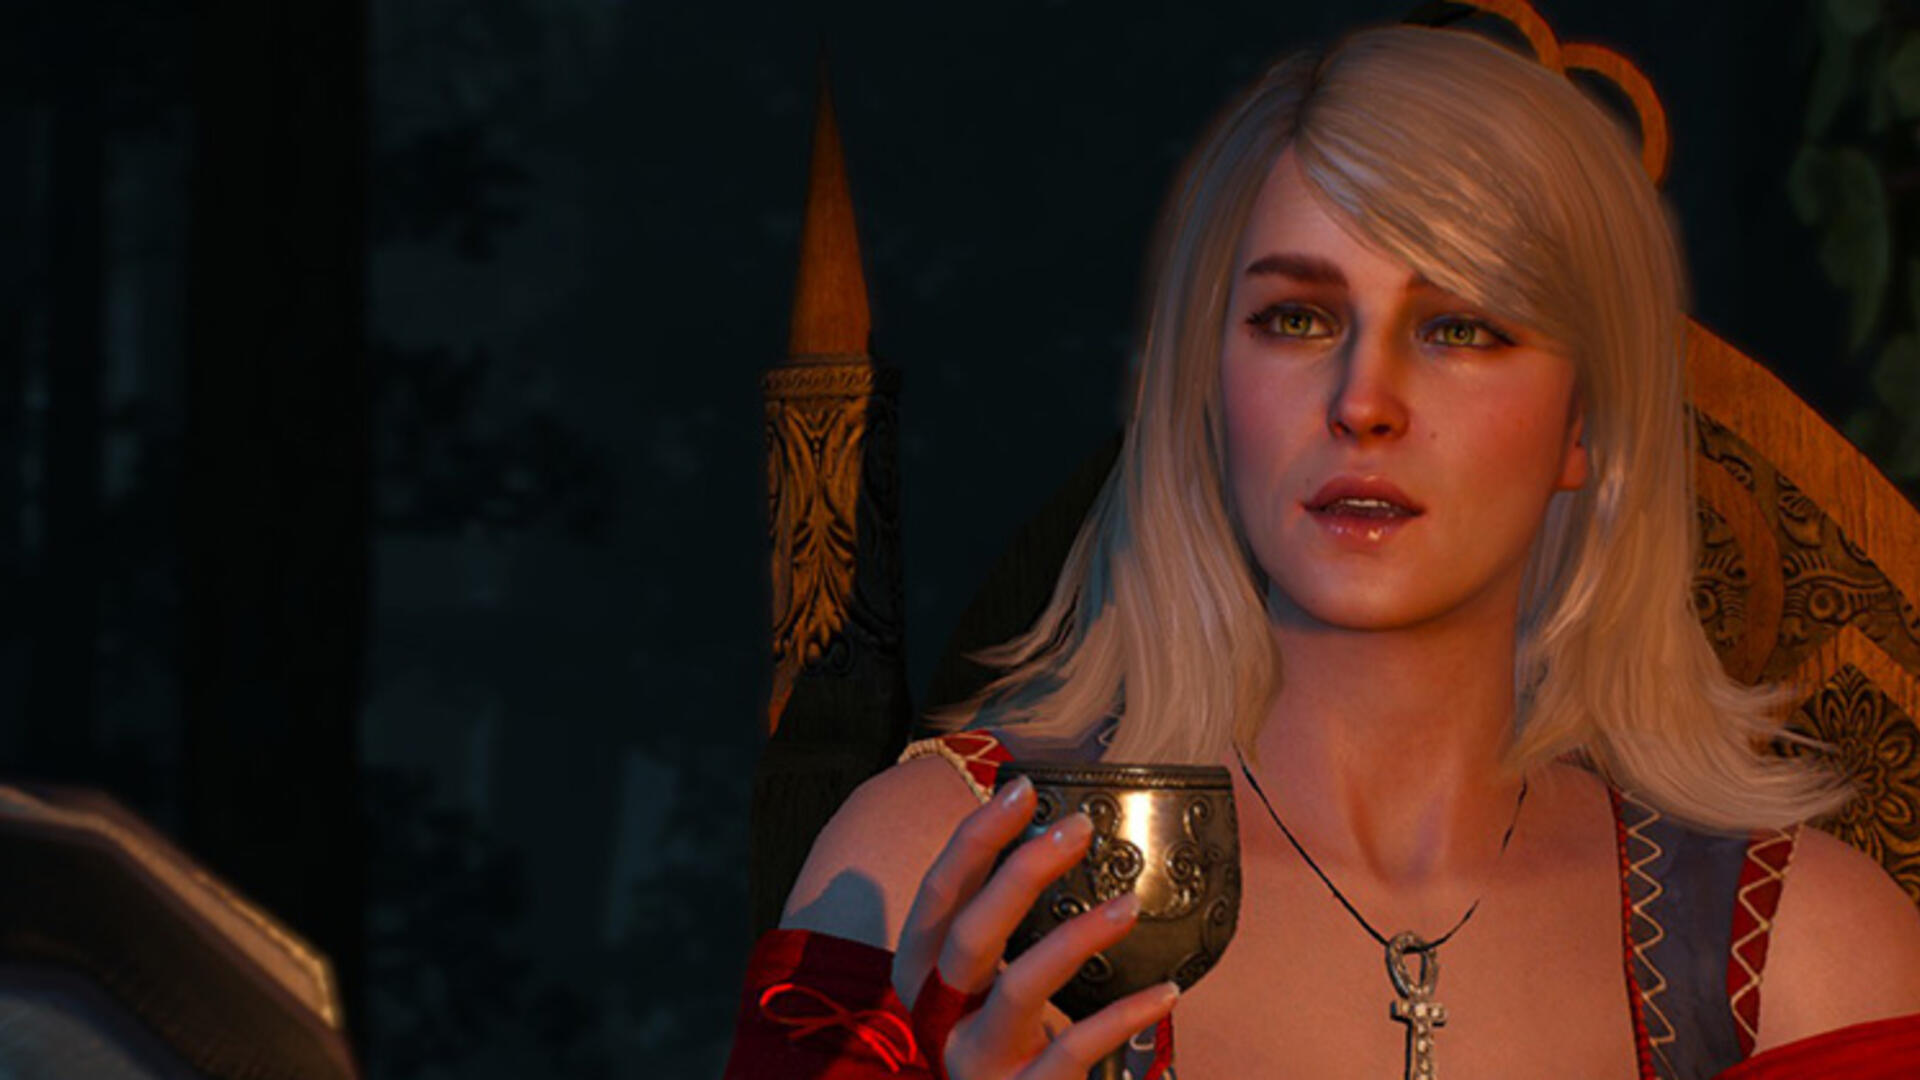 The Witcher 3 Romance - How to Romance Yennefer, Triss